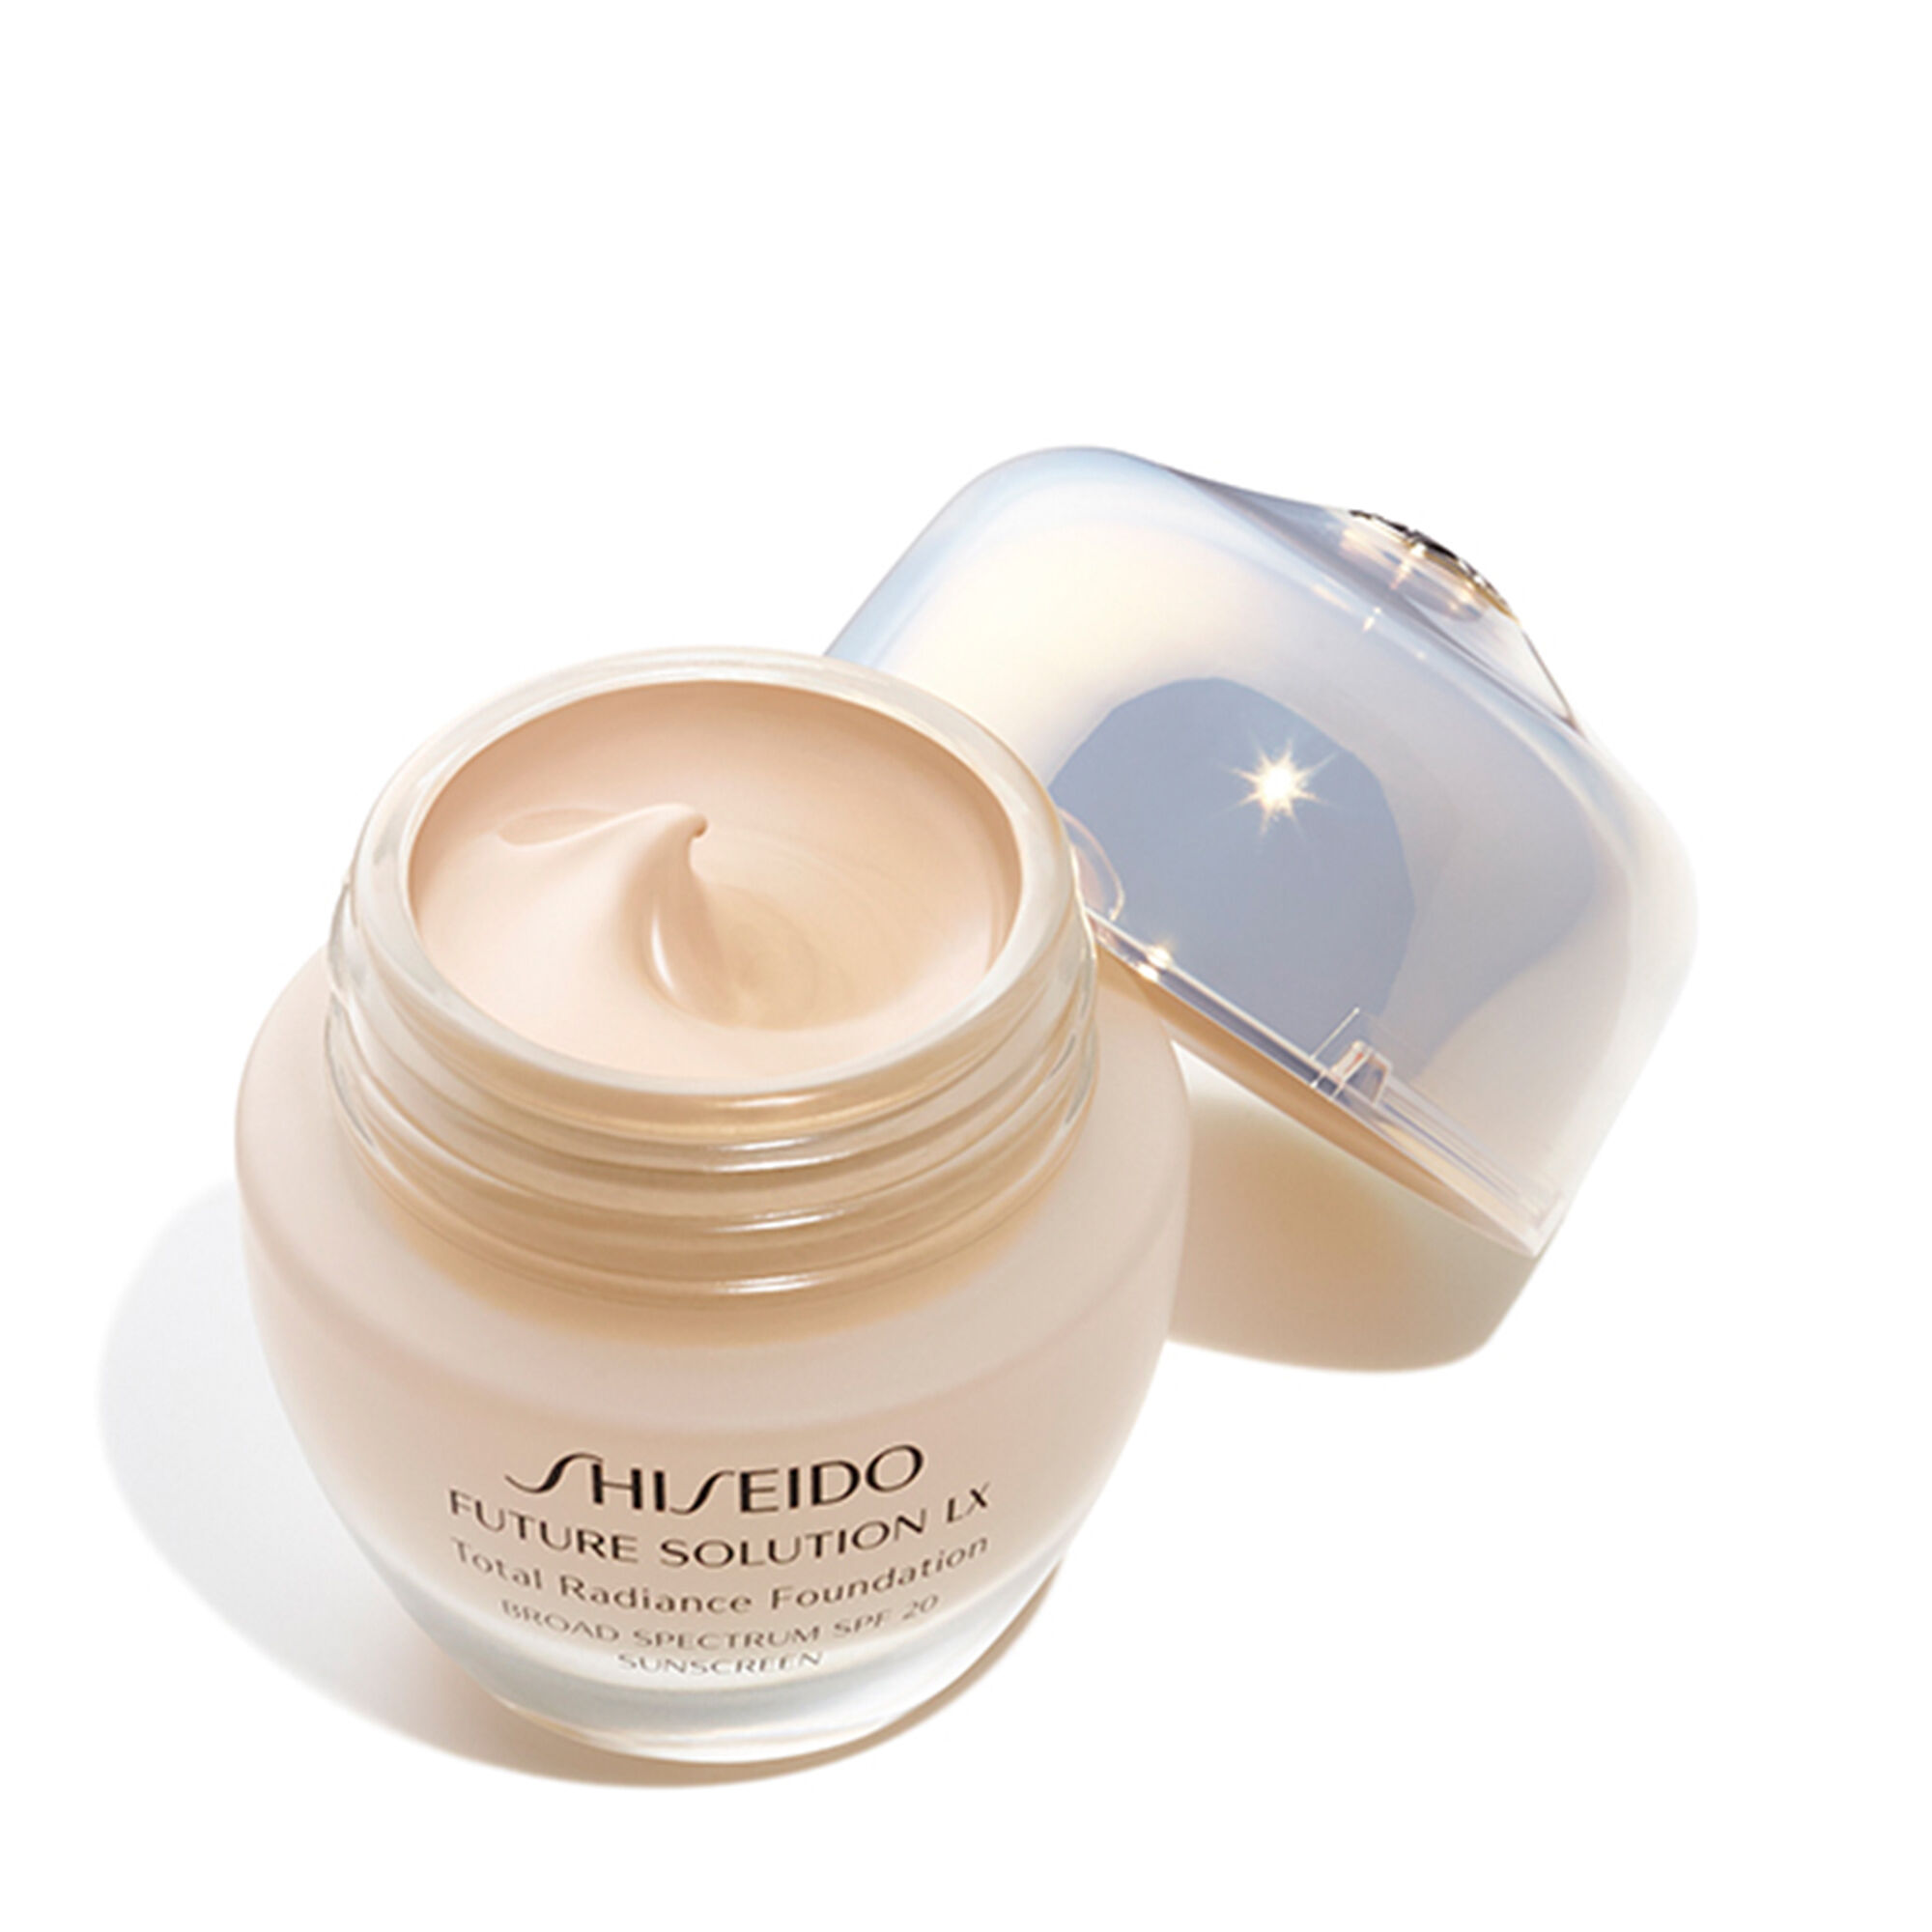 Total Radiance Foundation SPF 20, G1